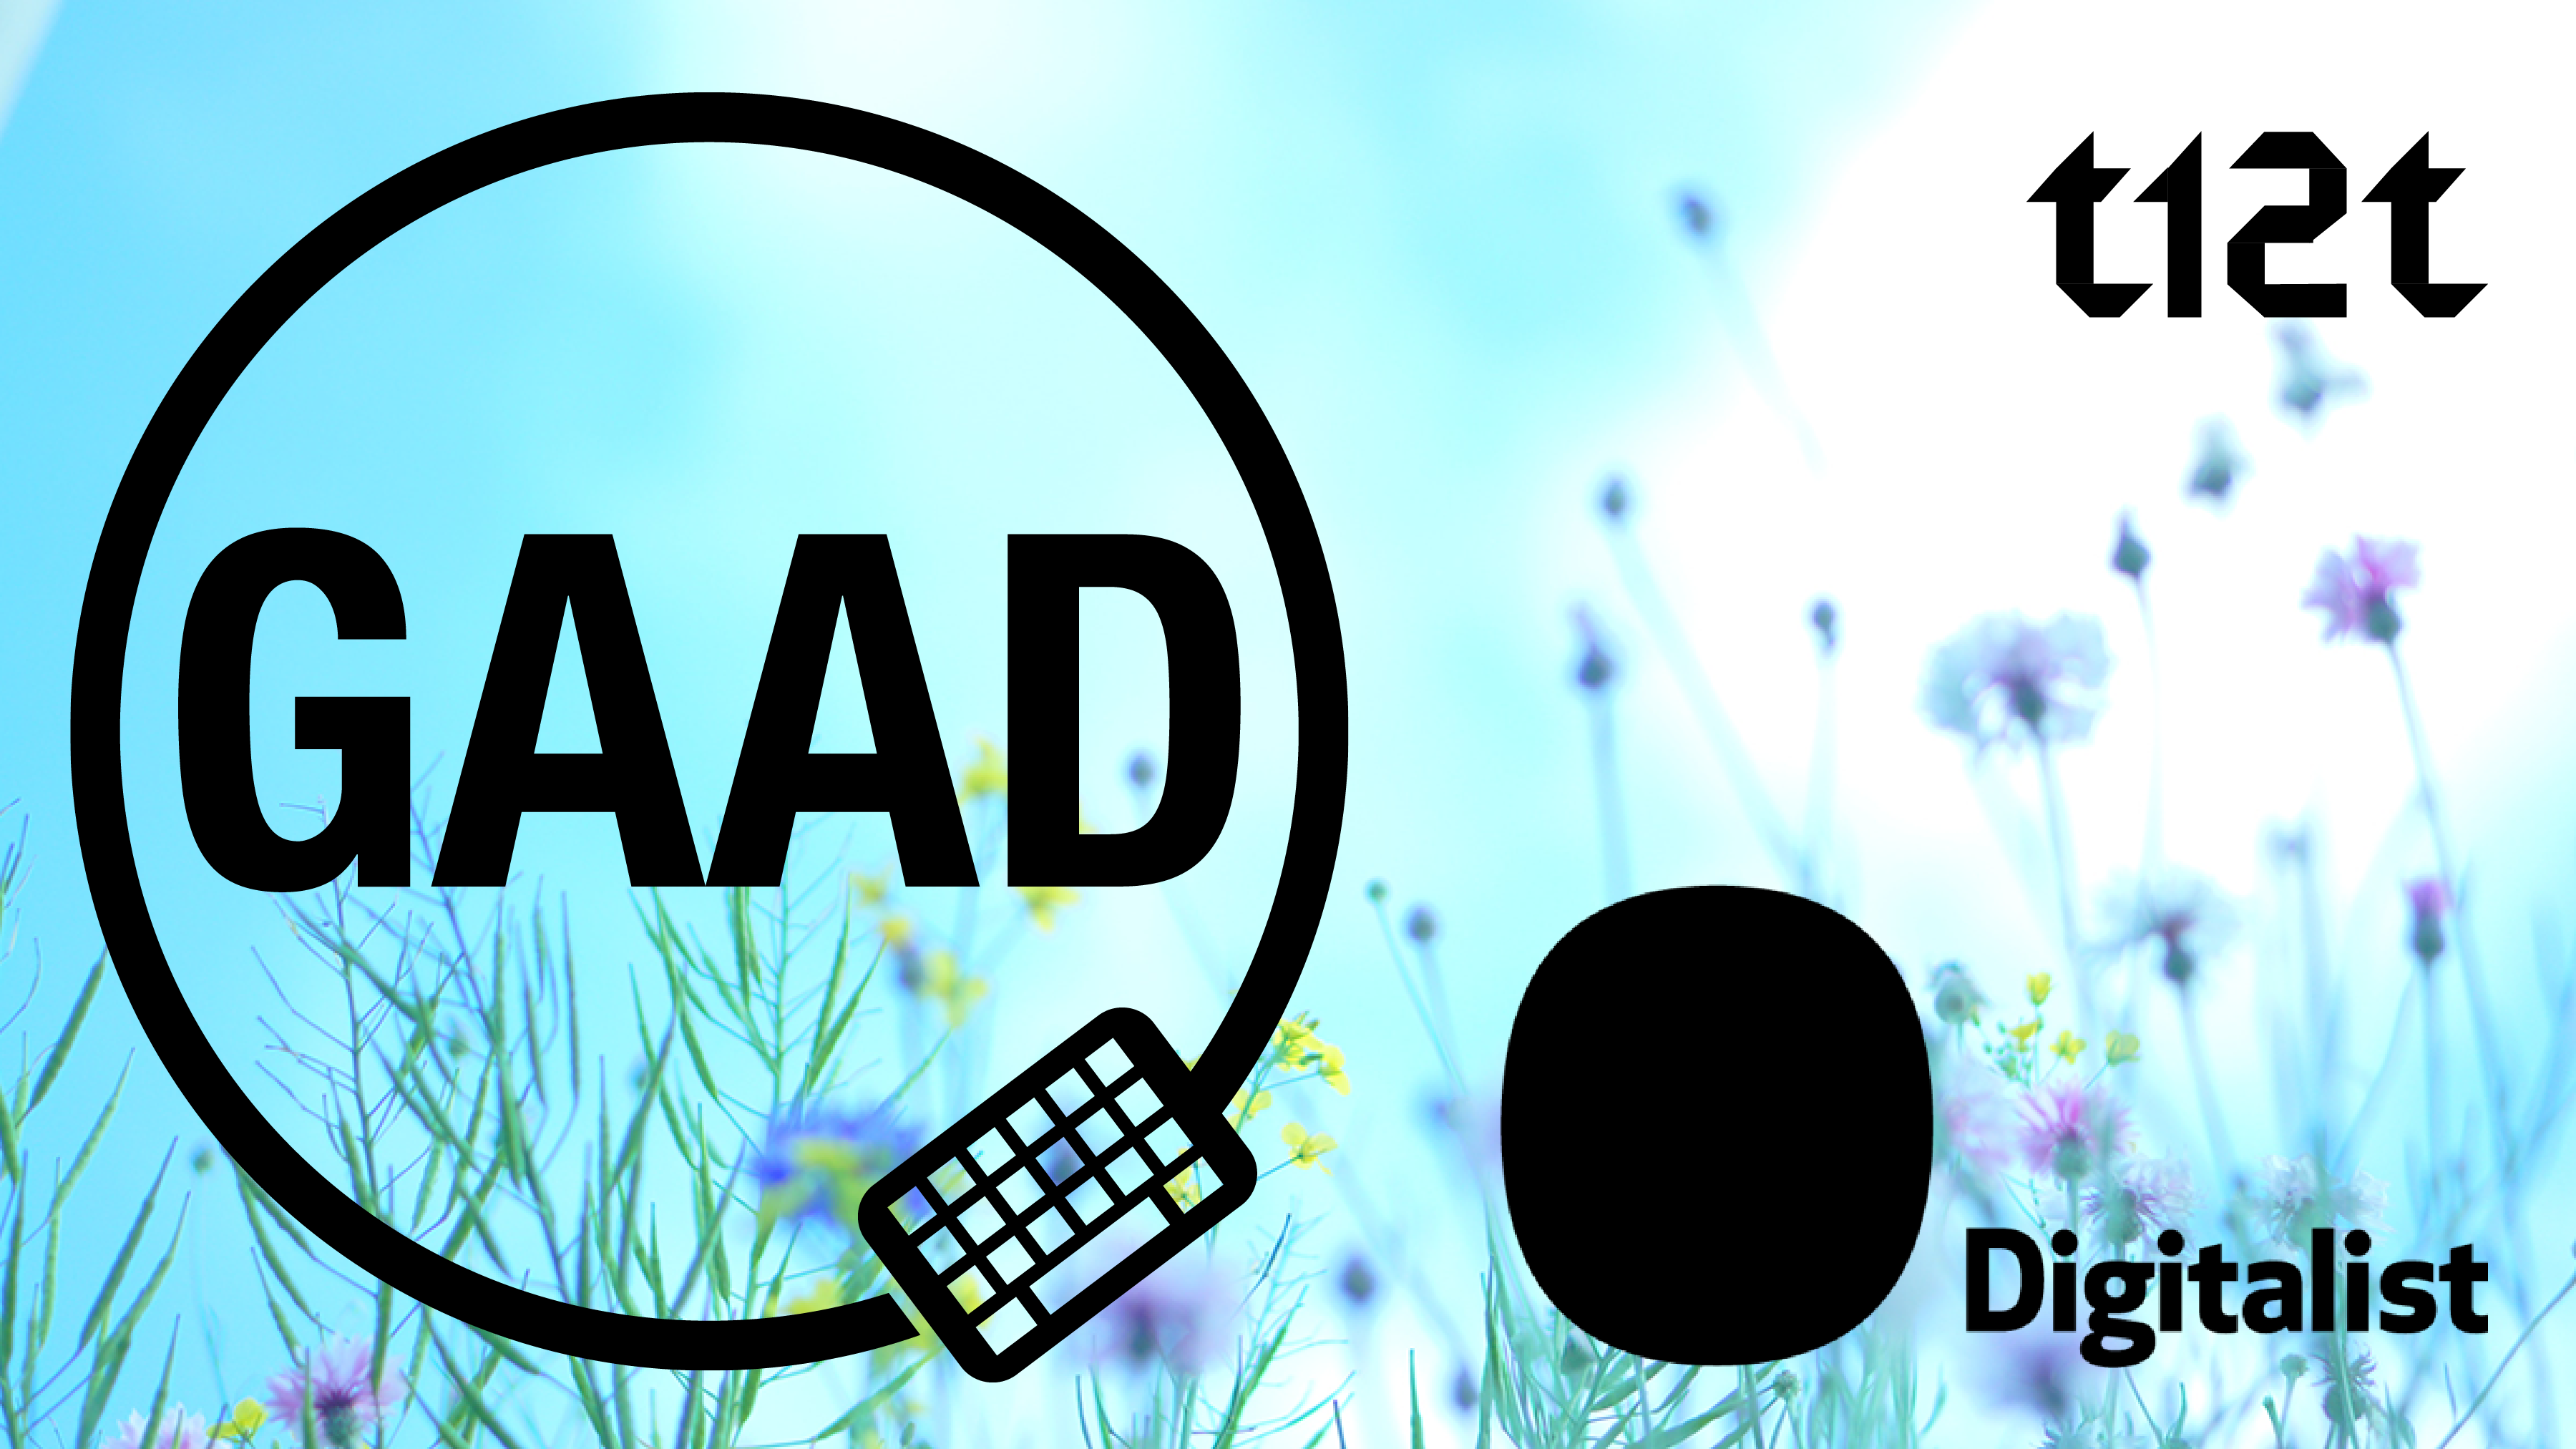 Logotypes for GAAD, Digitalist and T12t on a blue background with flowers